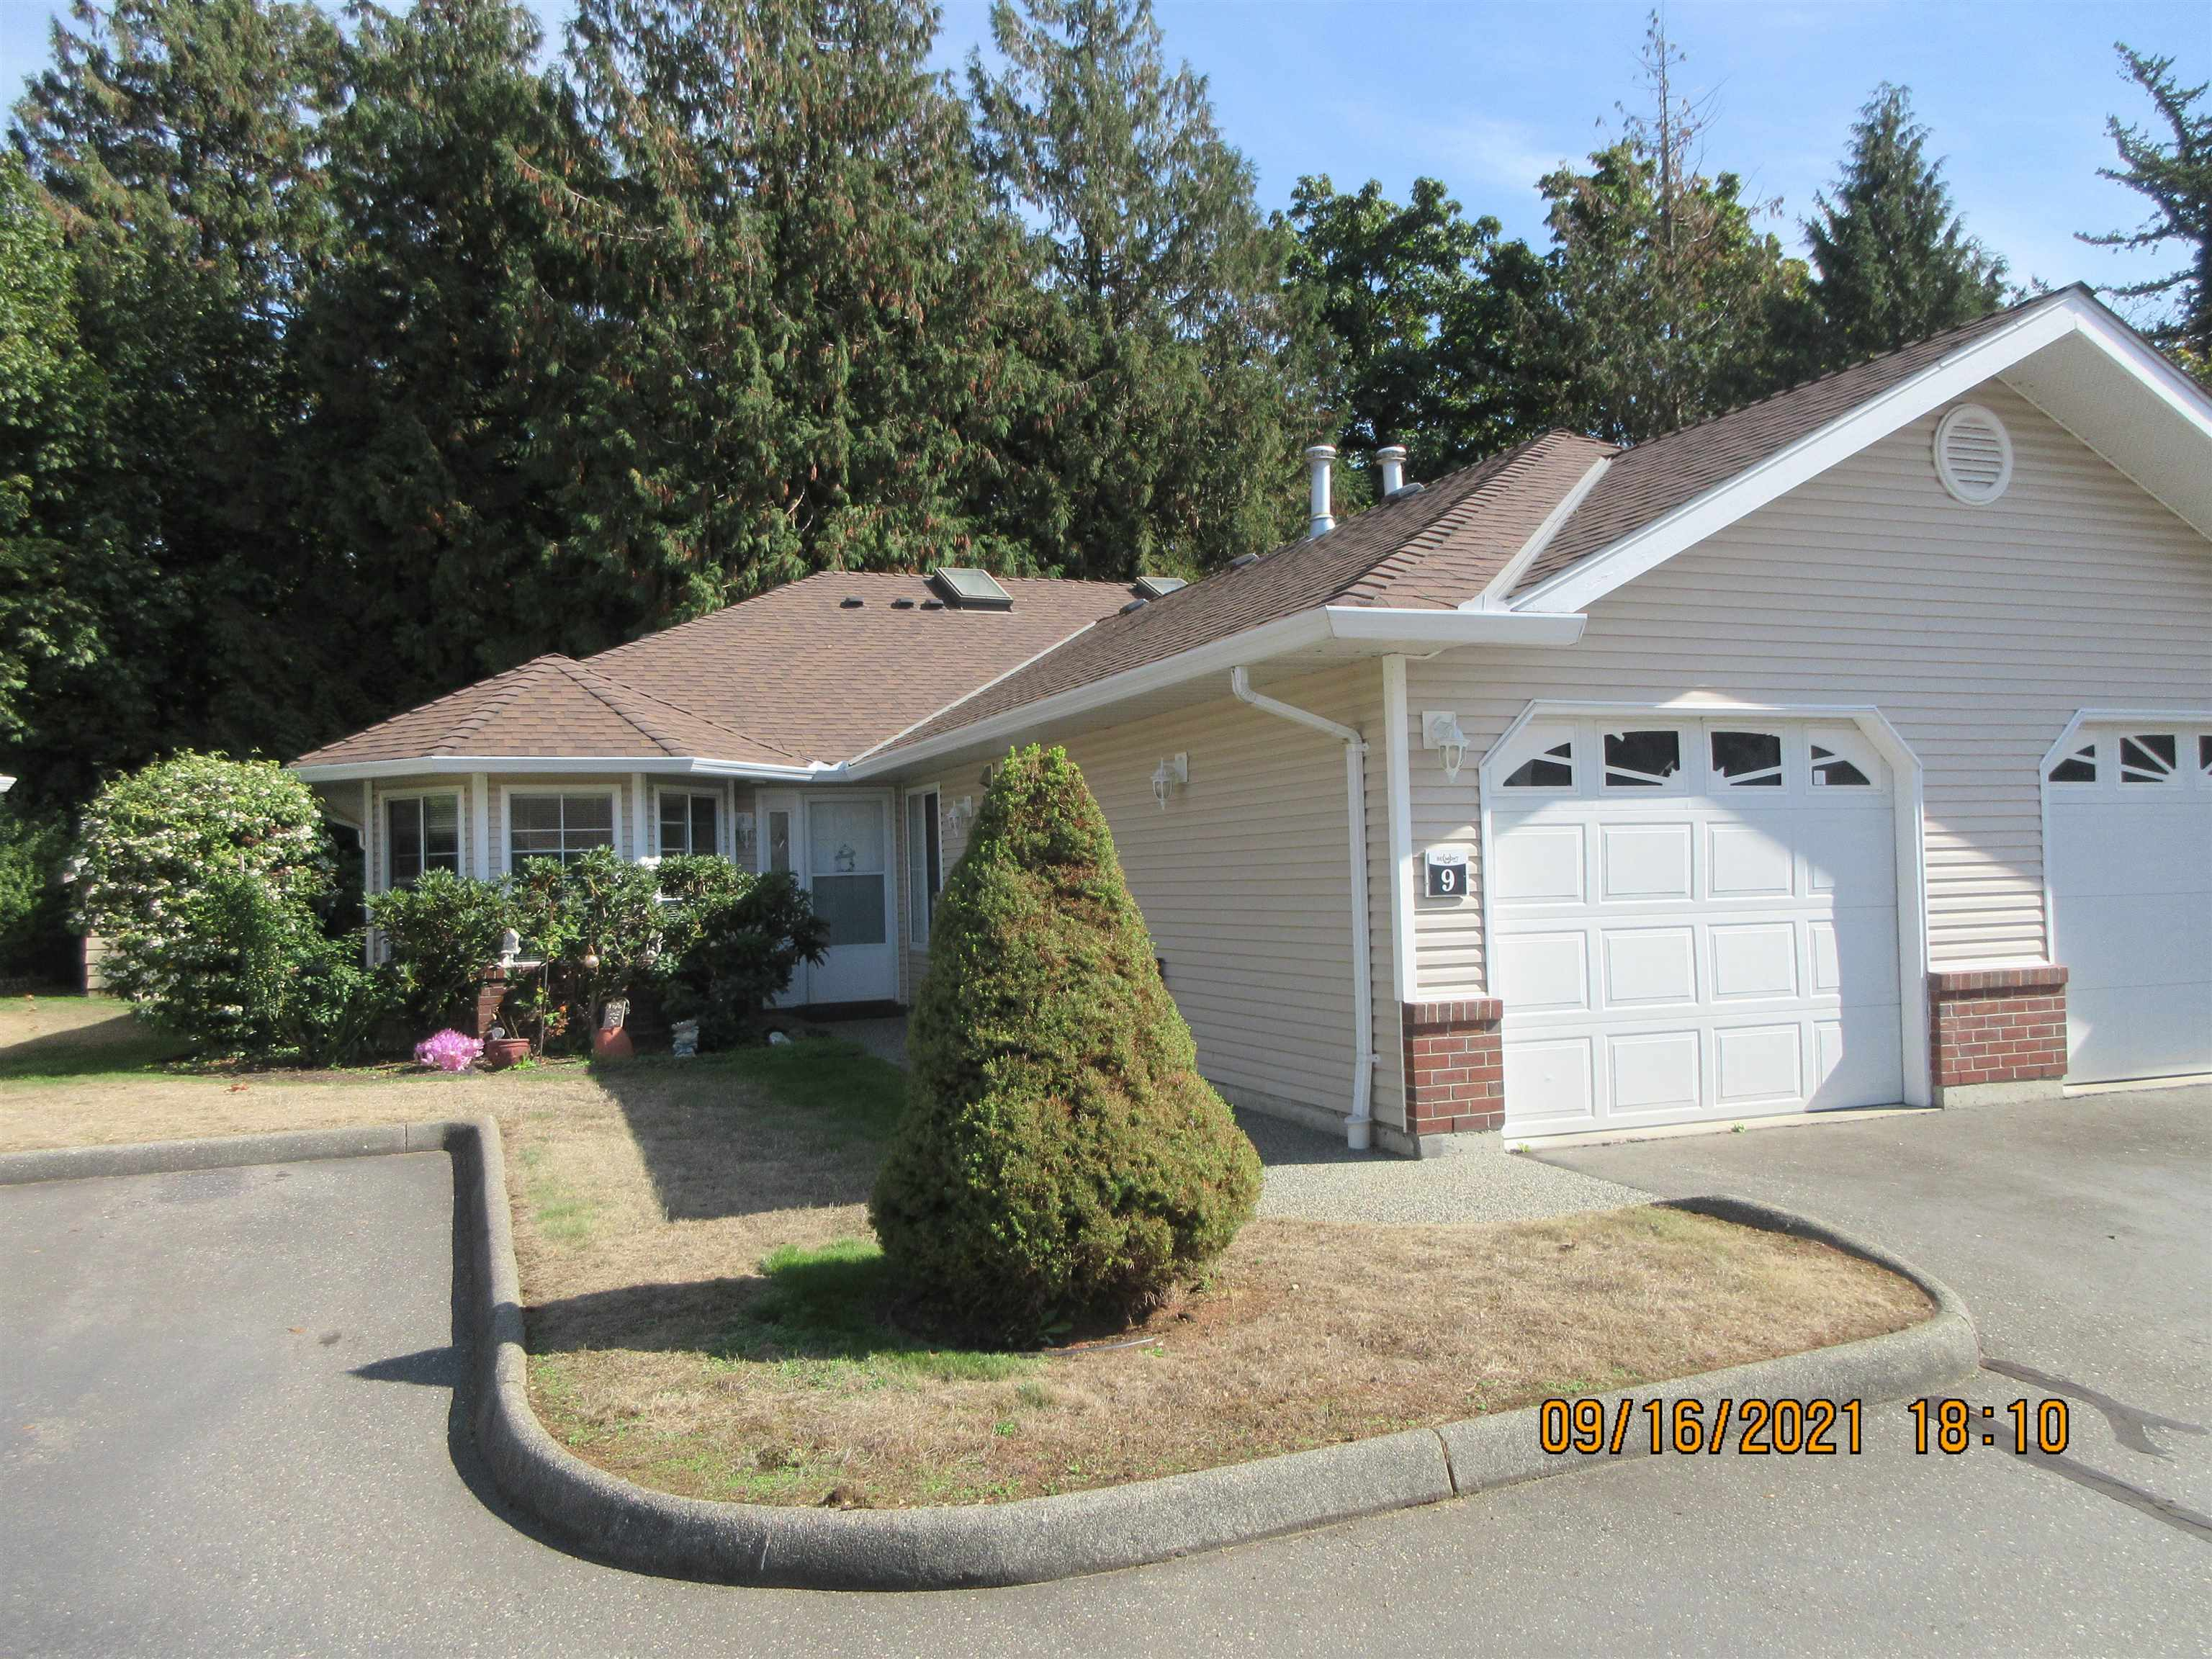 9 1973 WINFIELD DRIVE - Abbotsford East Townhouse for sale, 2 Bedrooms (R2619299) - #1